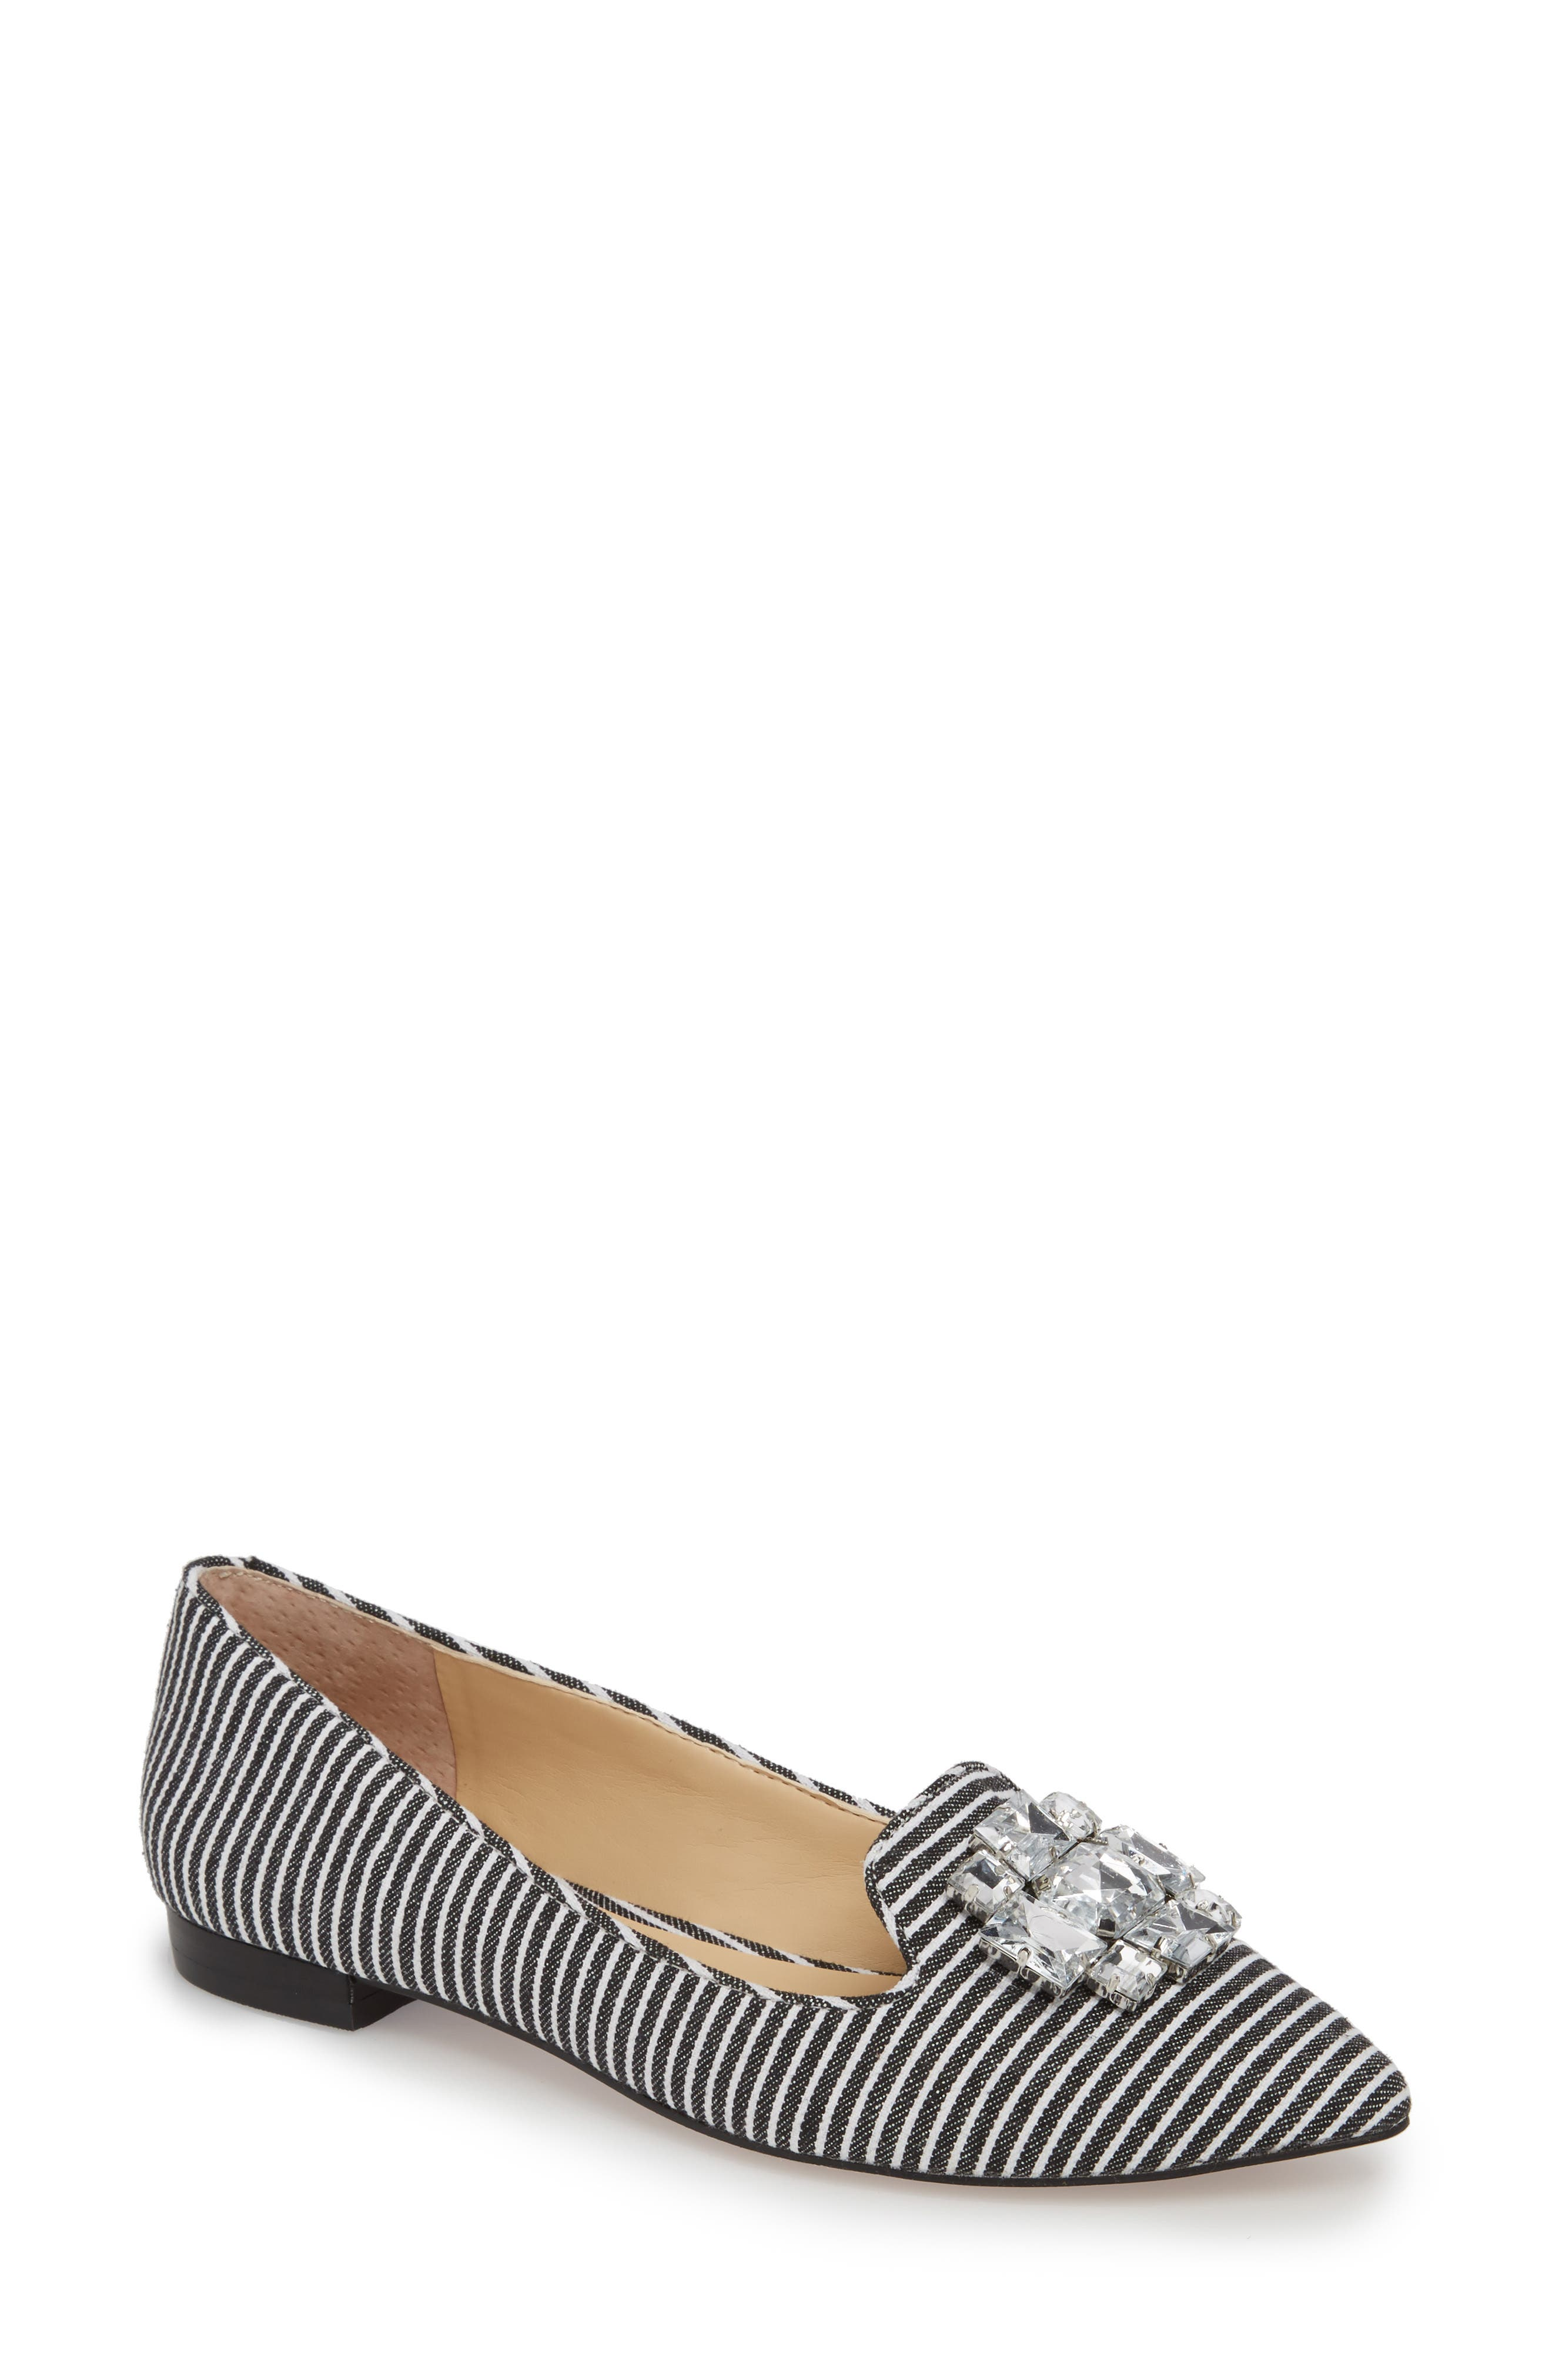 Libry Crystal Embellished Flat,                         Main,                         color, Black/ White Fabric